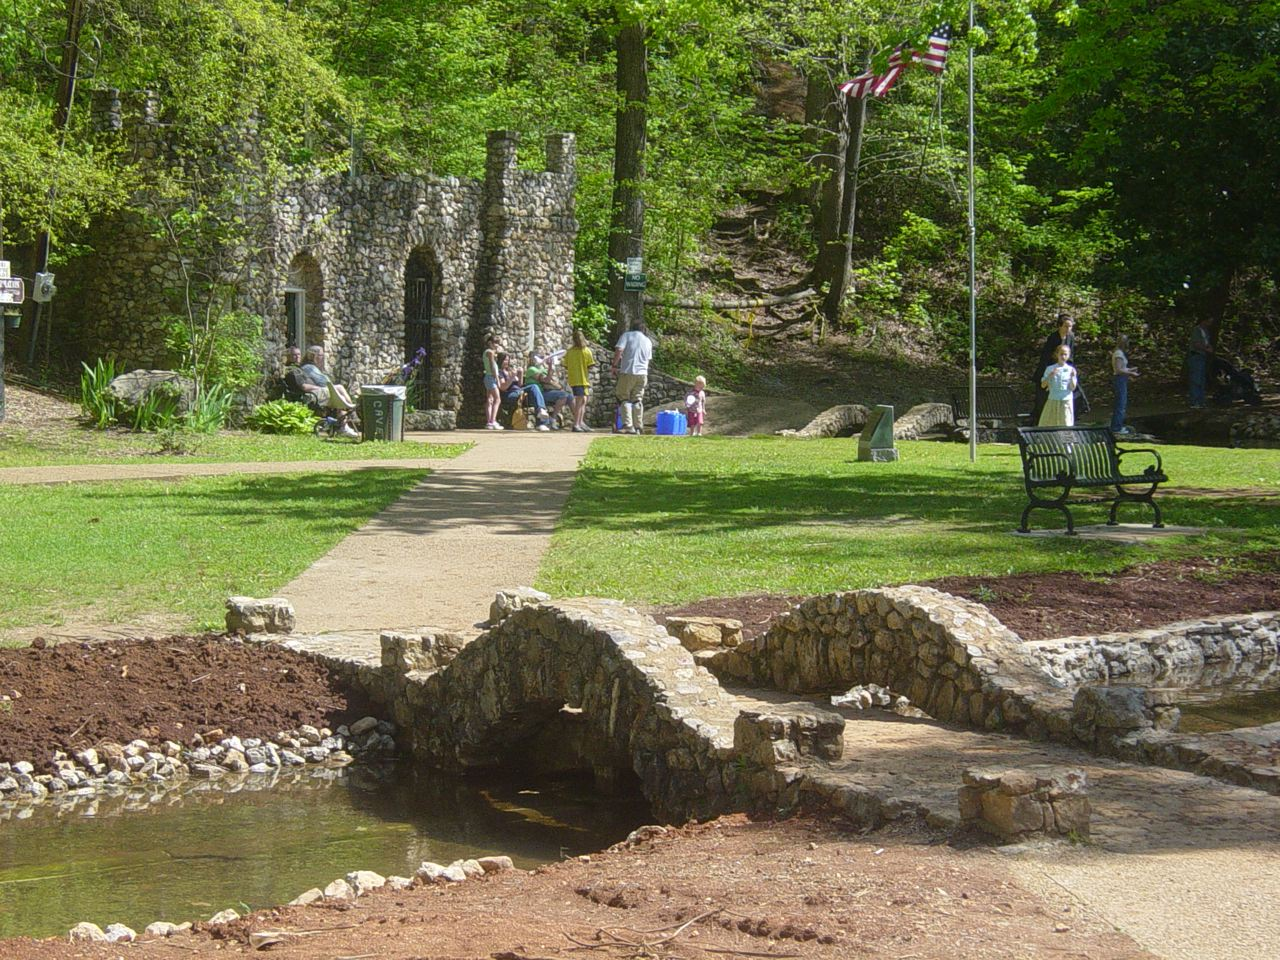 Help yourself to a drink of delectable water flowing from the cave at Rolater Park, and take a tour inside.